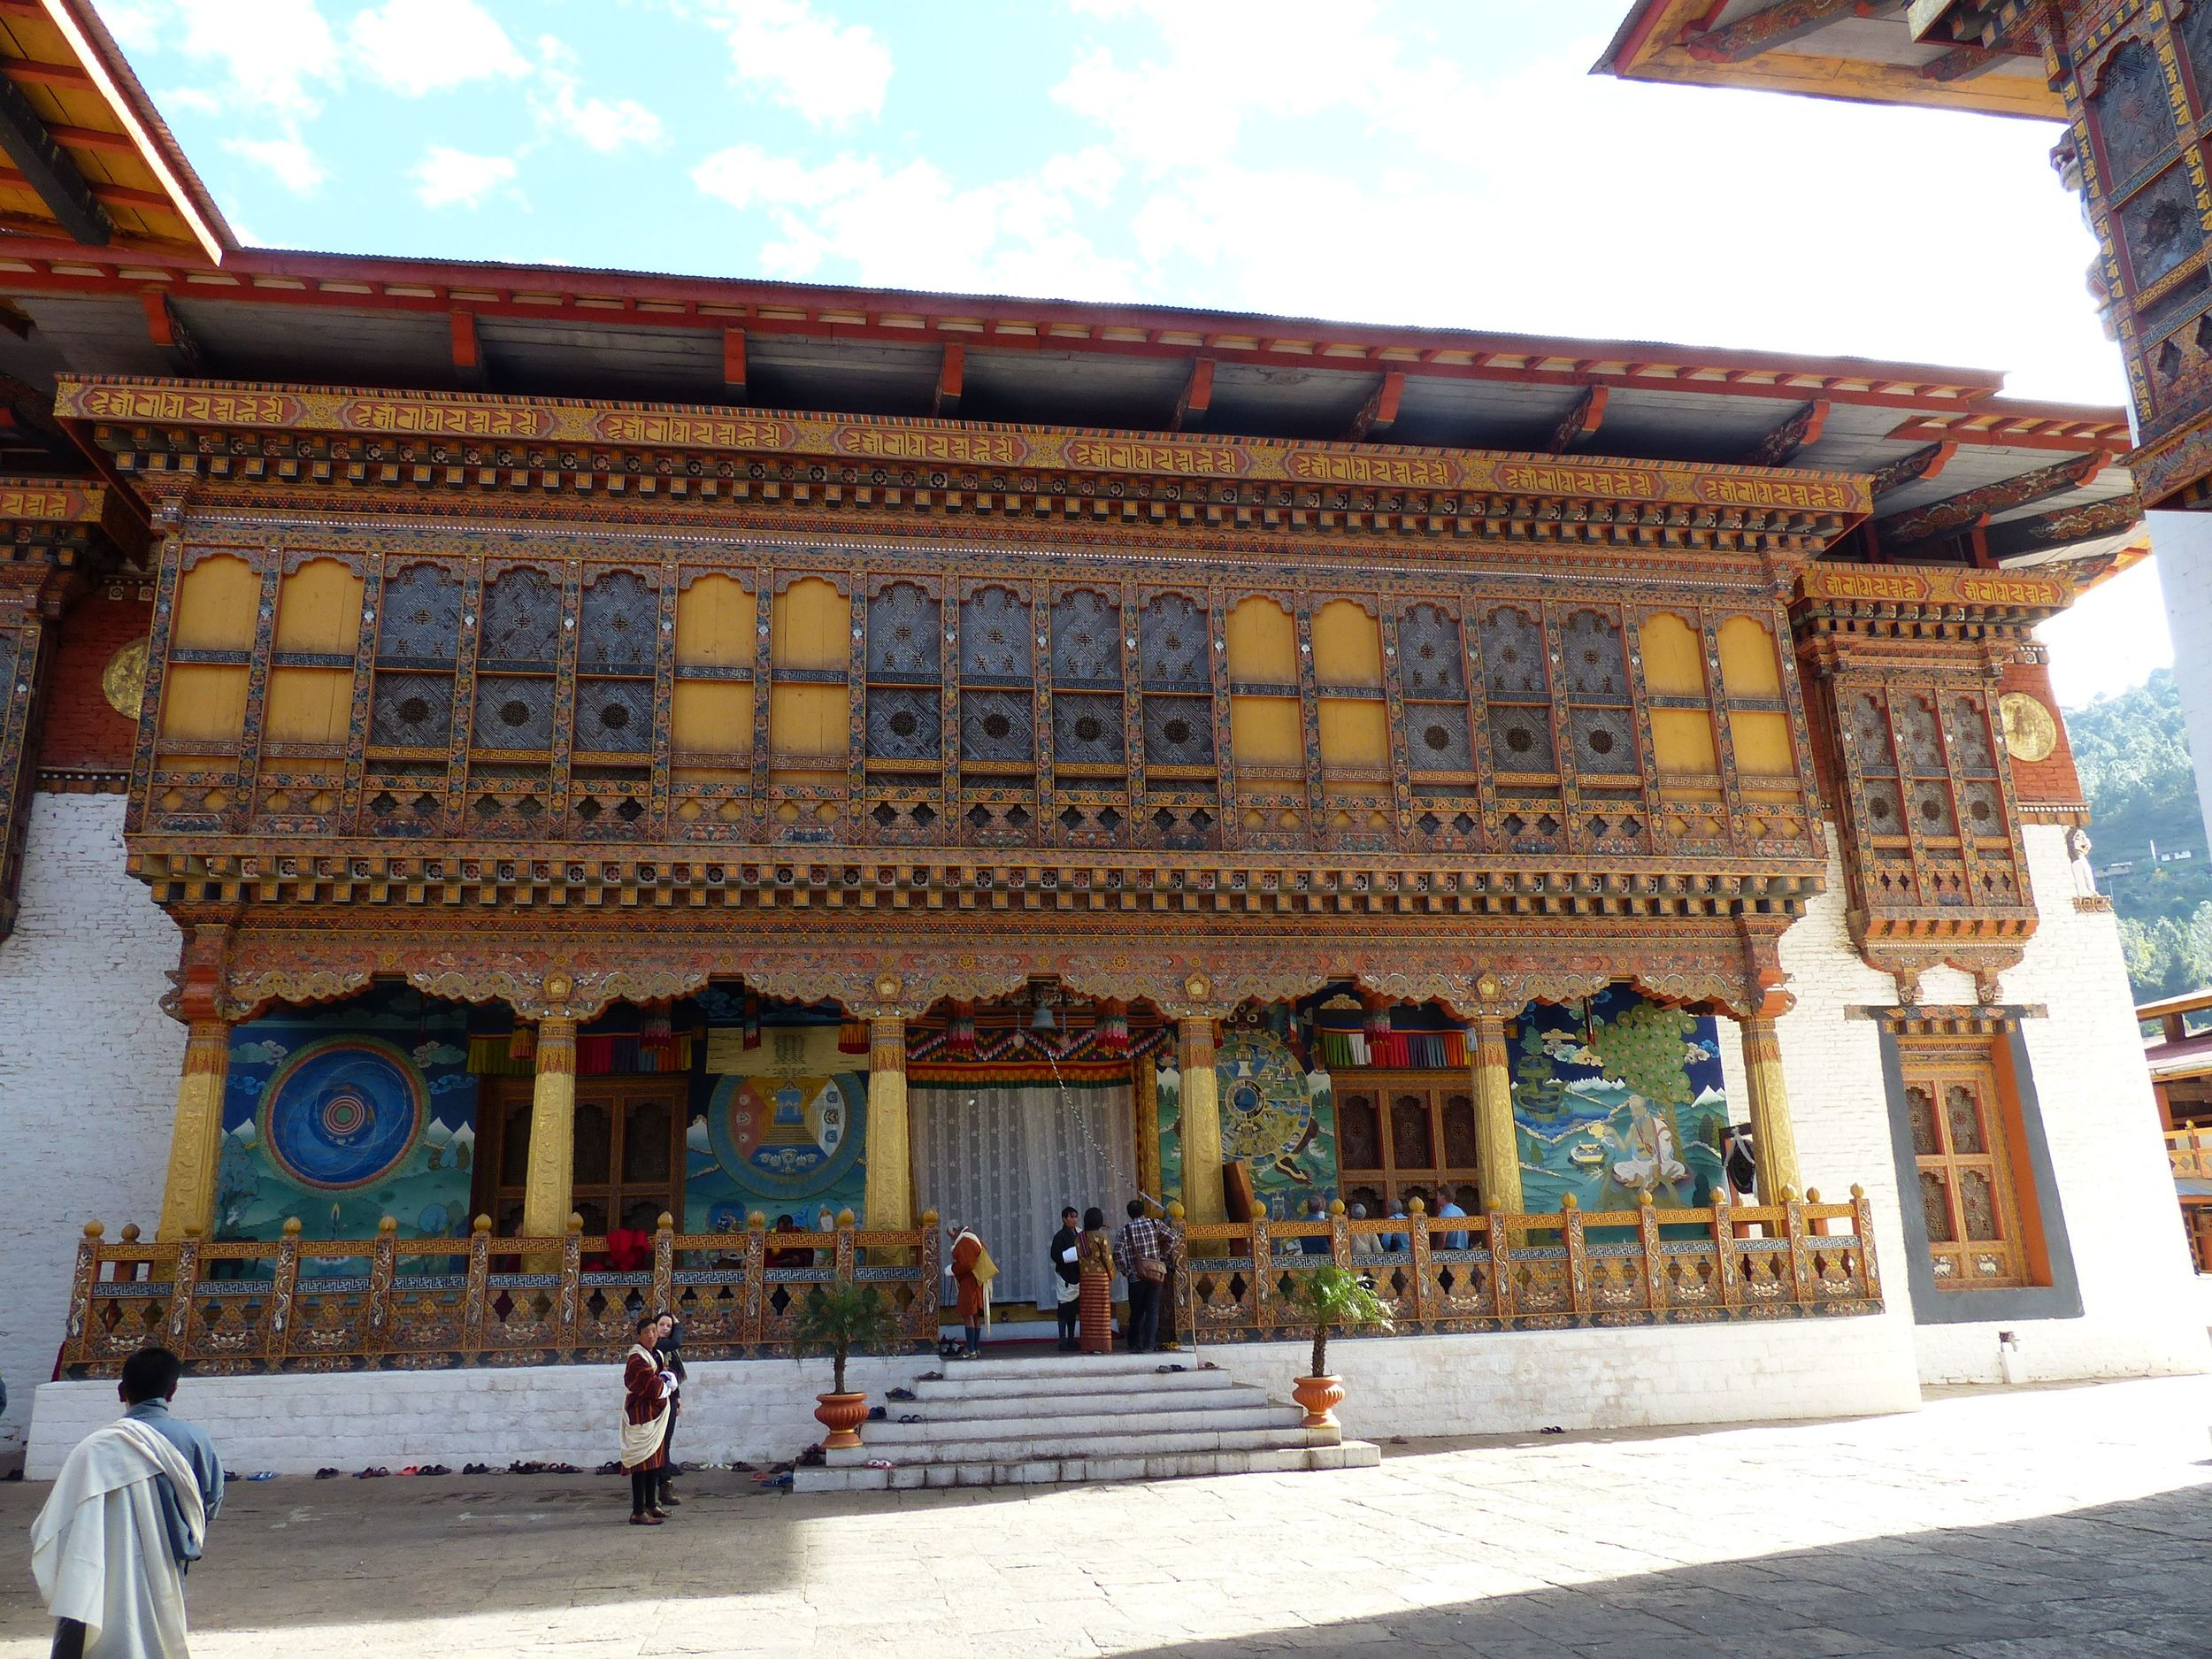 Part of Dzong where they held the Buddhist ceremony (inside, sadly not pics allowed)